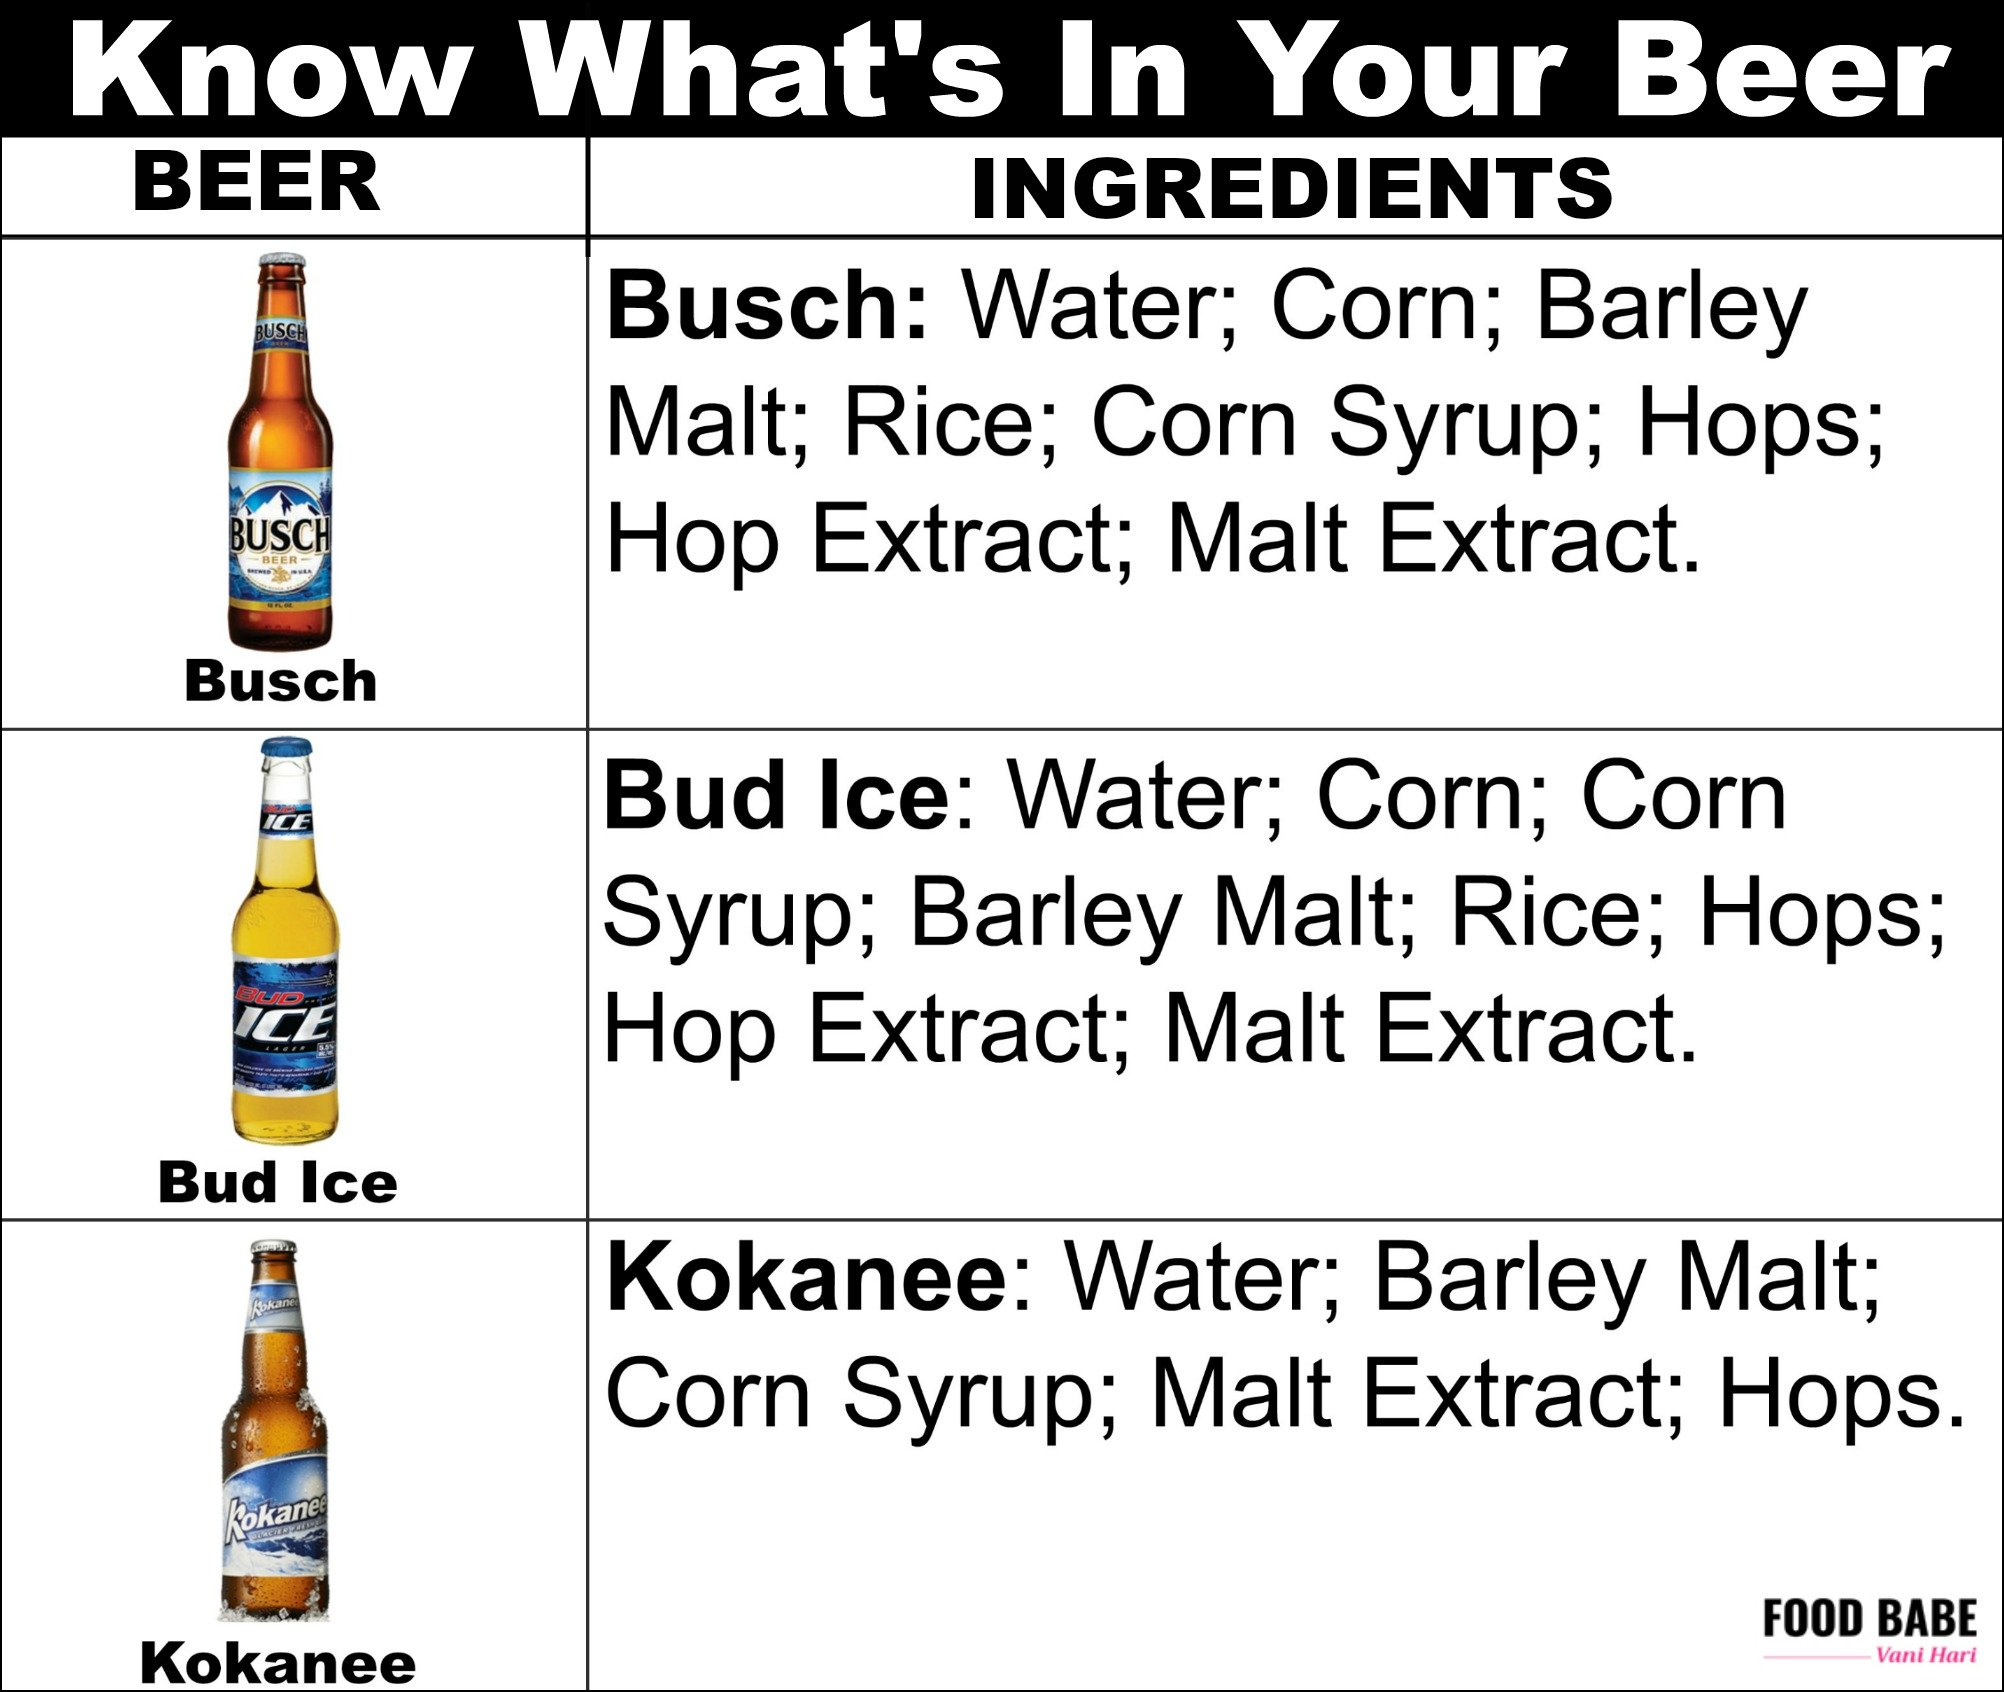 Why Ingredients in Beer Matter - And What Beer Companies